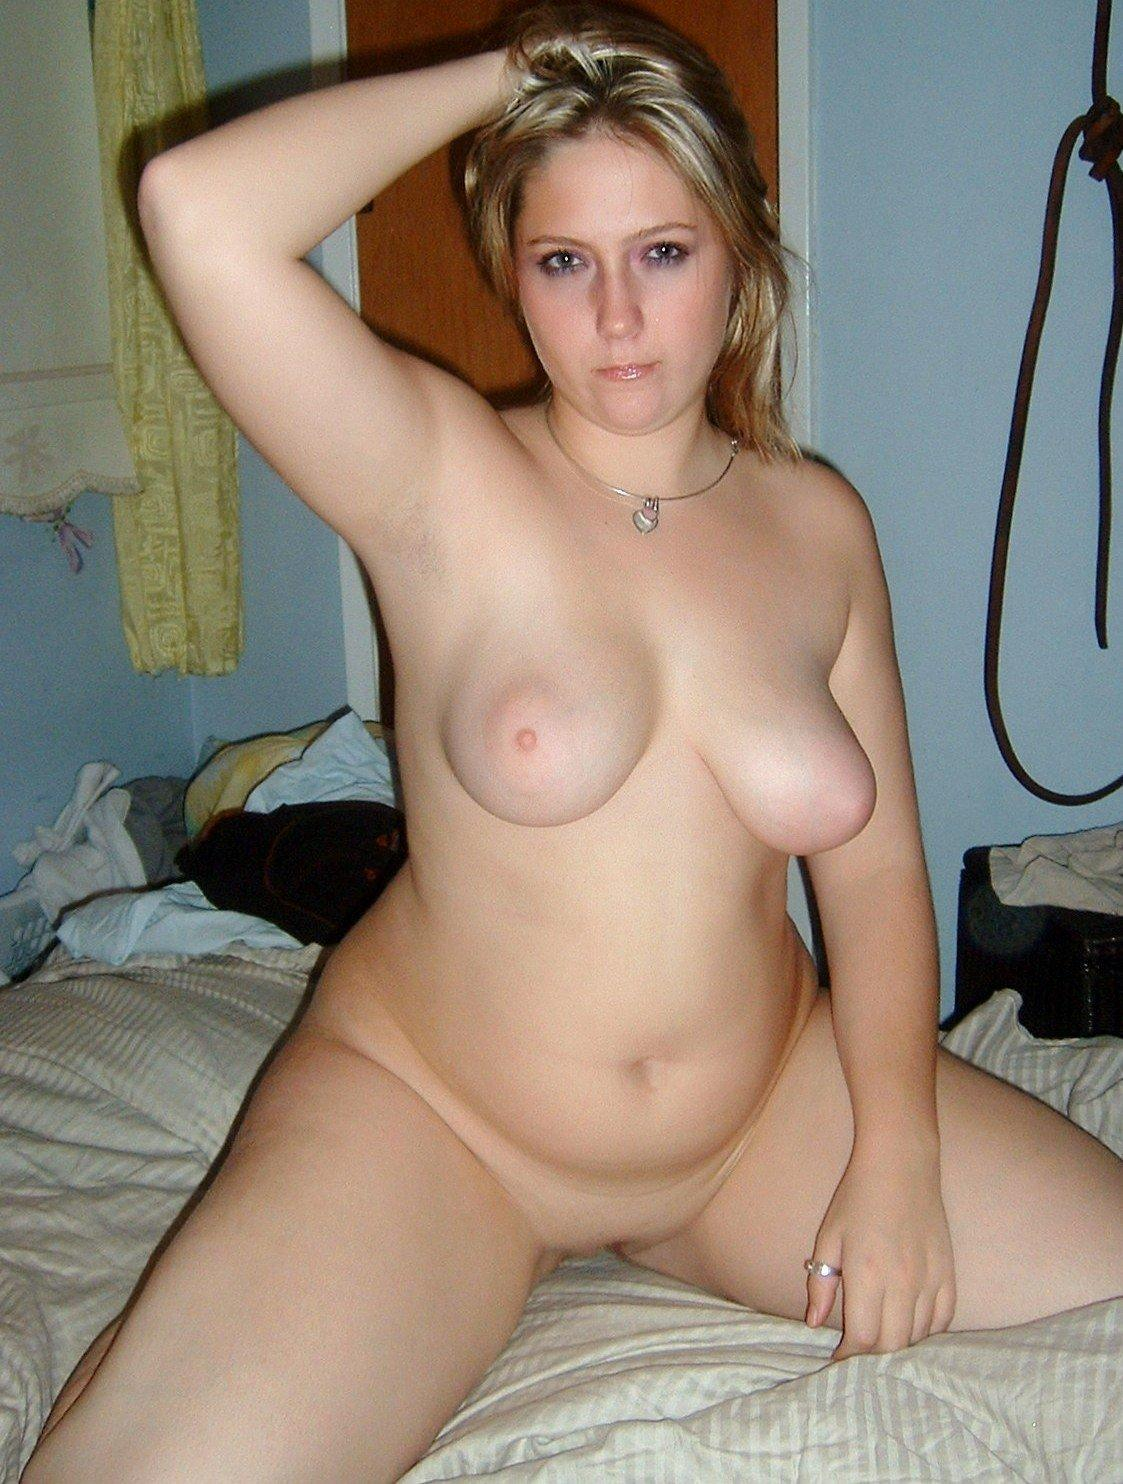 Amateur bbw puffy nude selfie